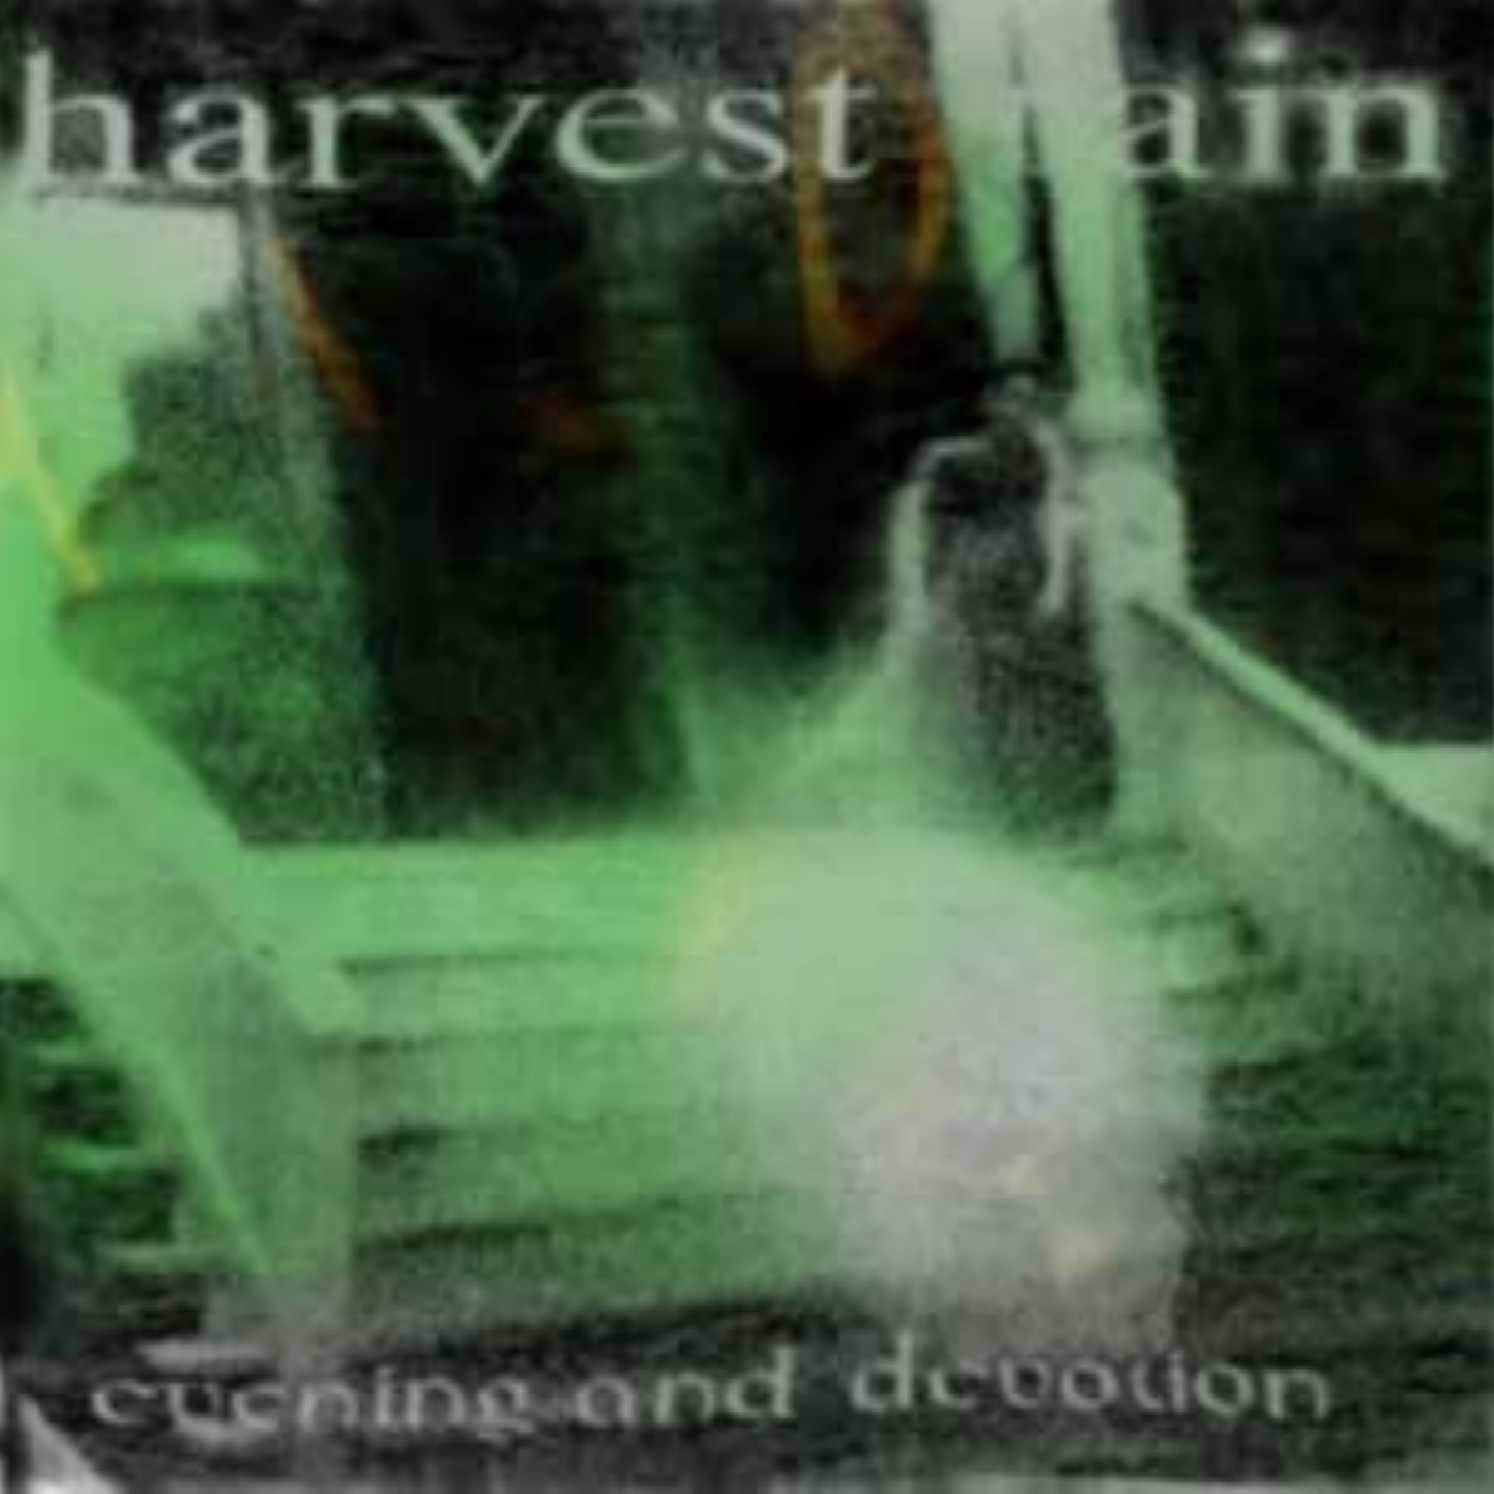 Evening and Devotion (the Album) 1997